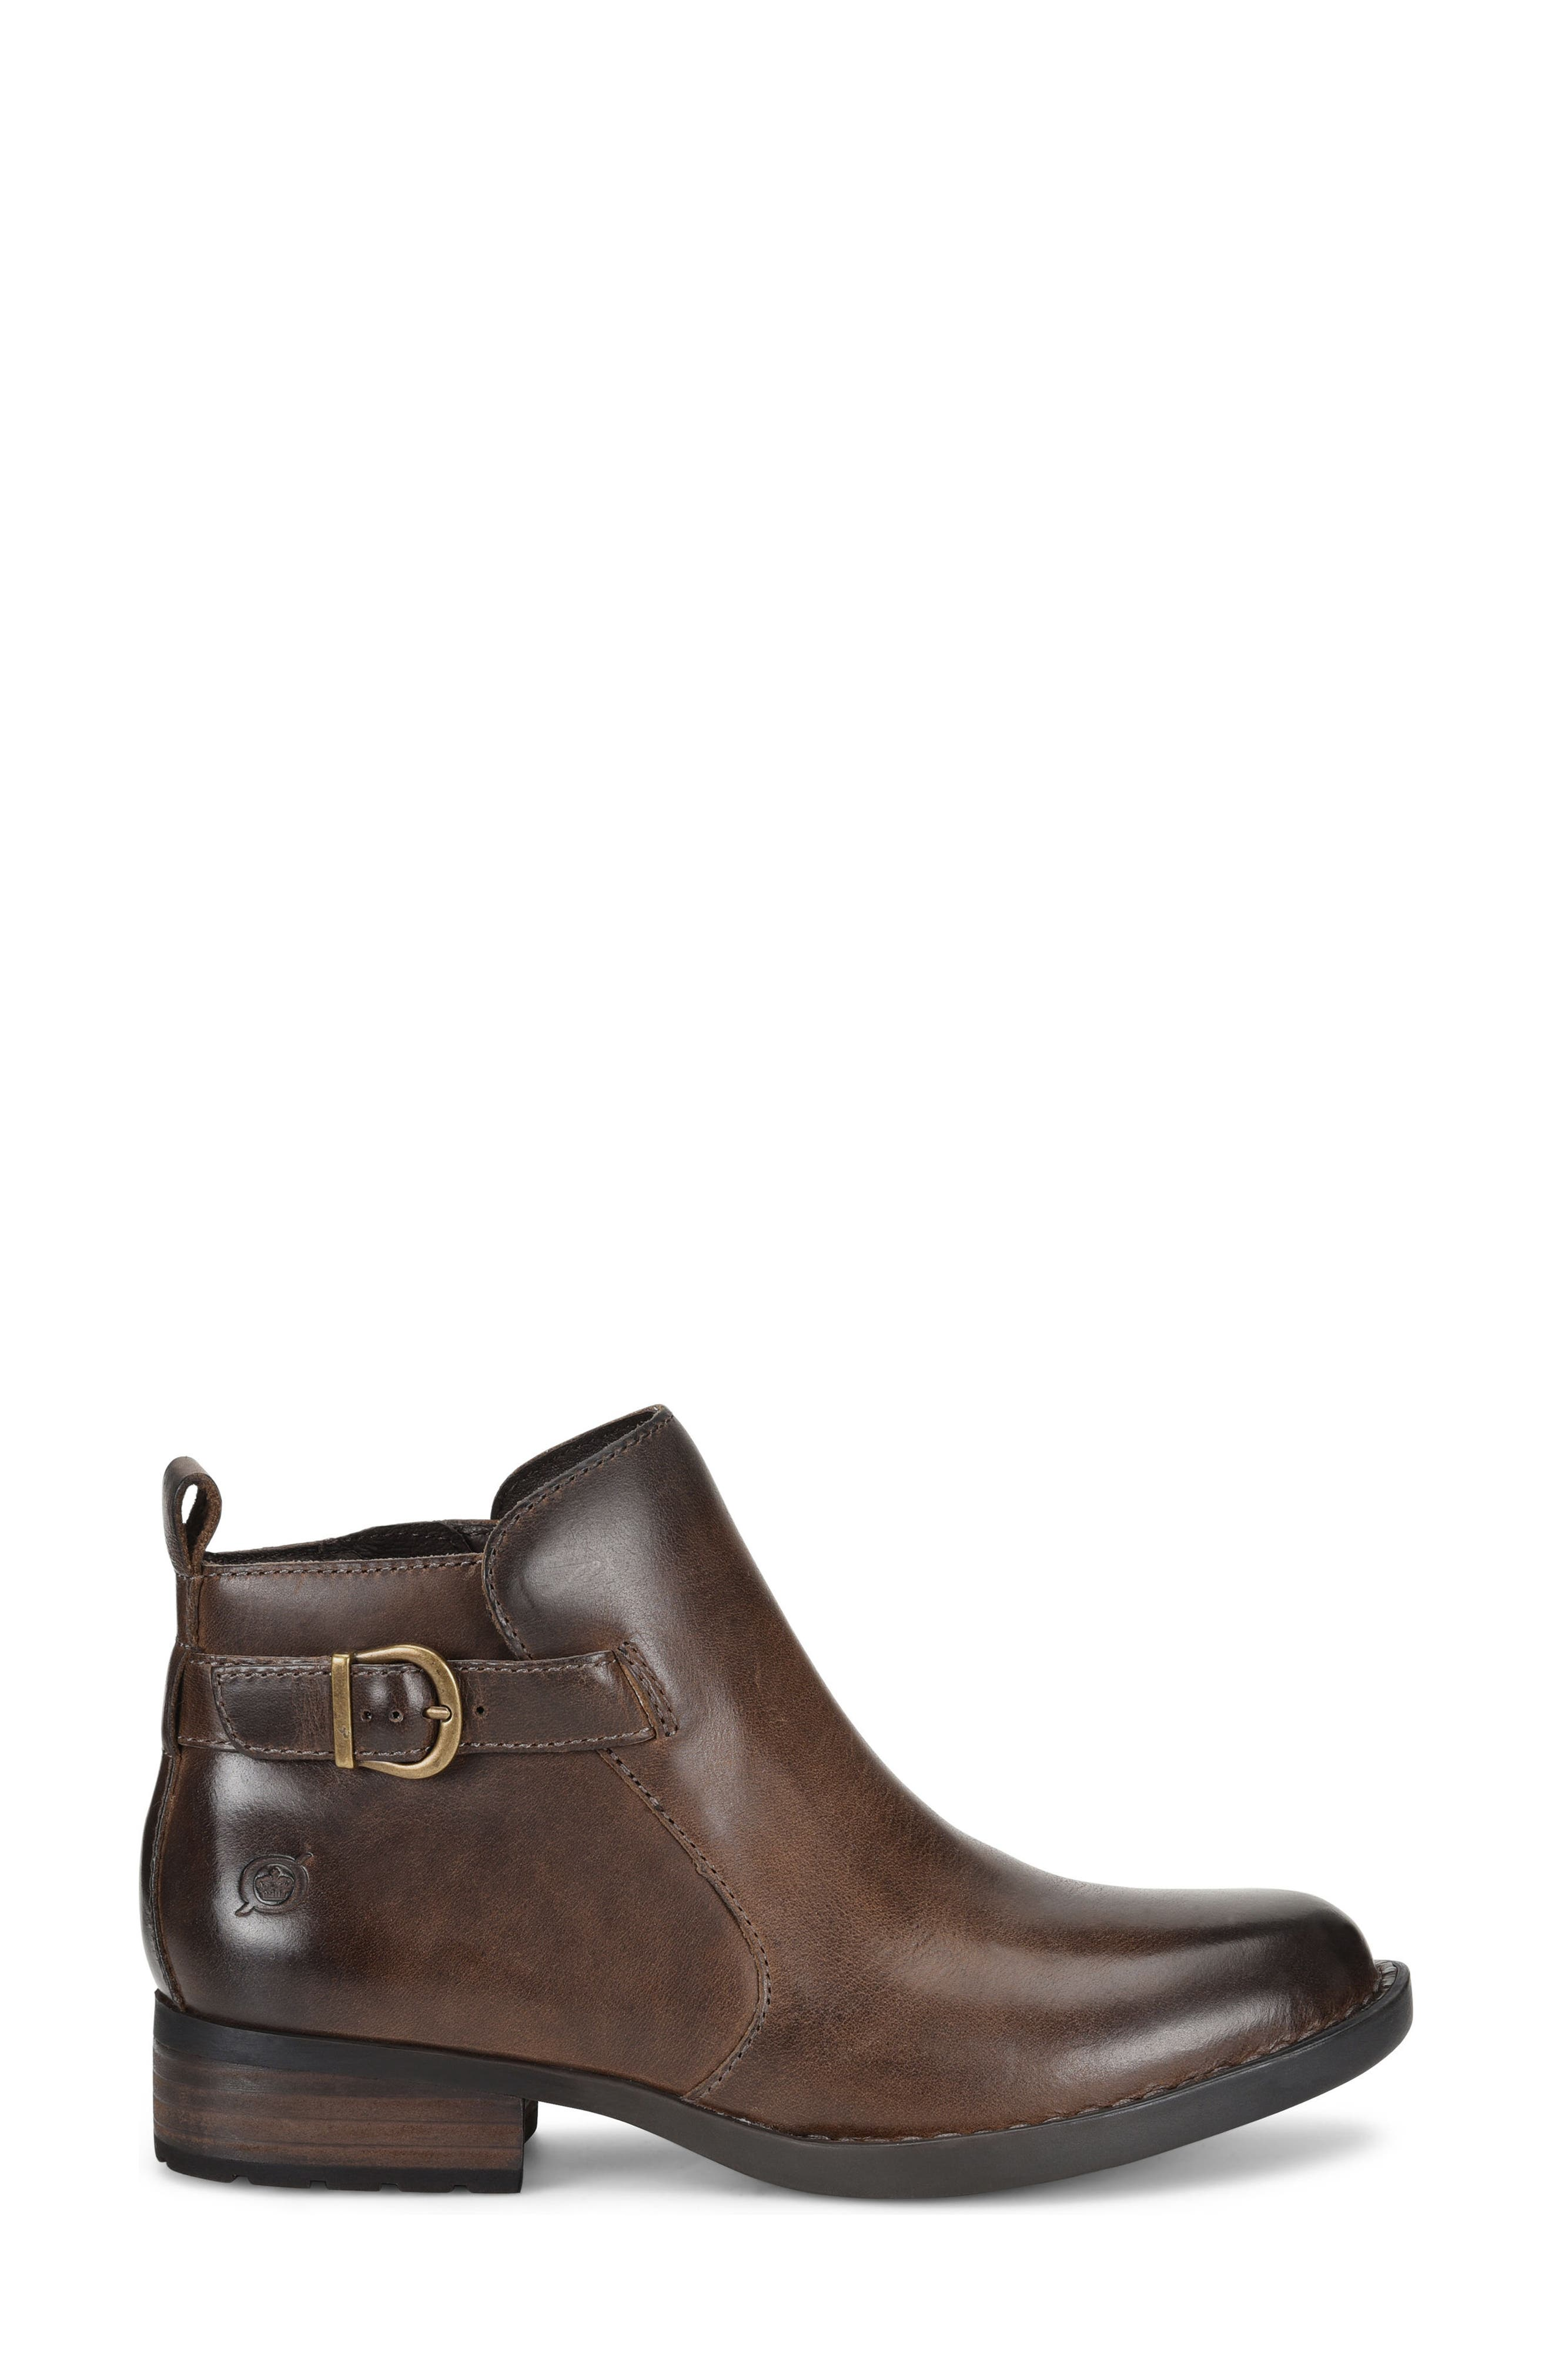 Timms Bootie,                             Alternate thumbnail 3, color,                             Brown Leather